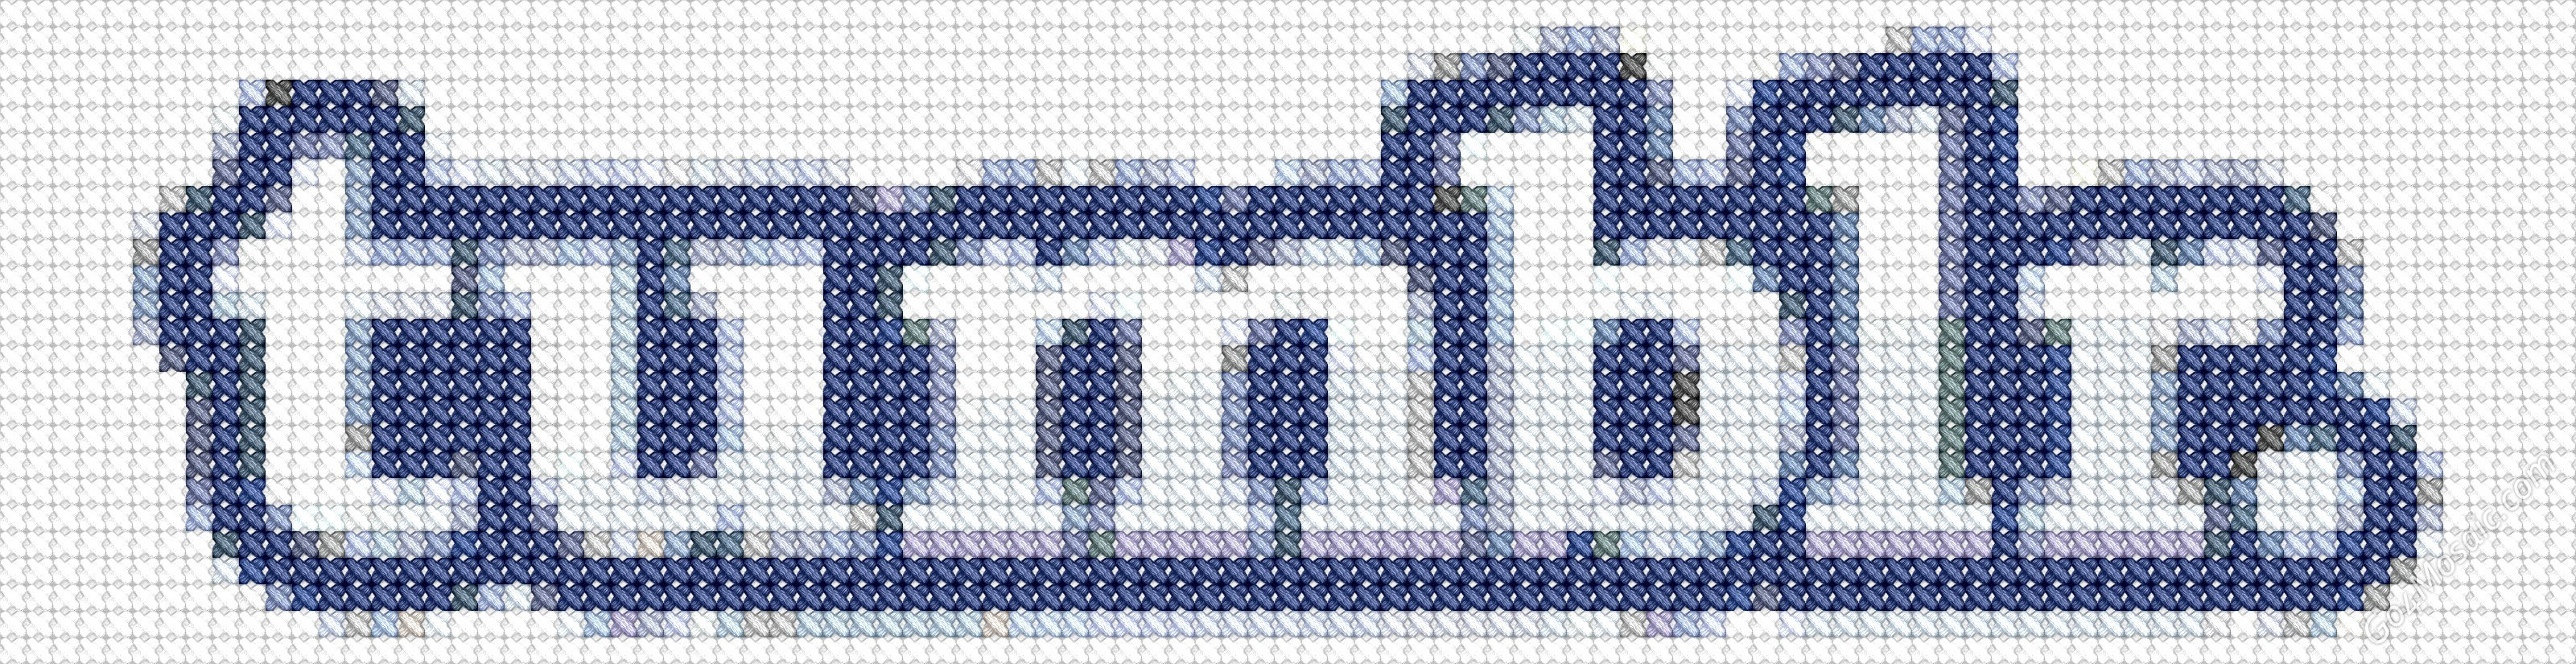 Cross-stitched tumblr logo